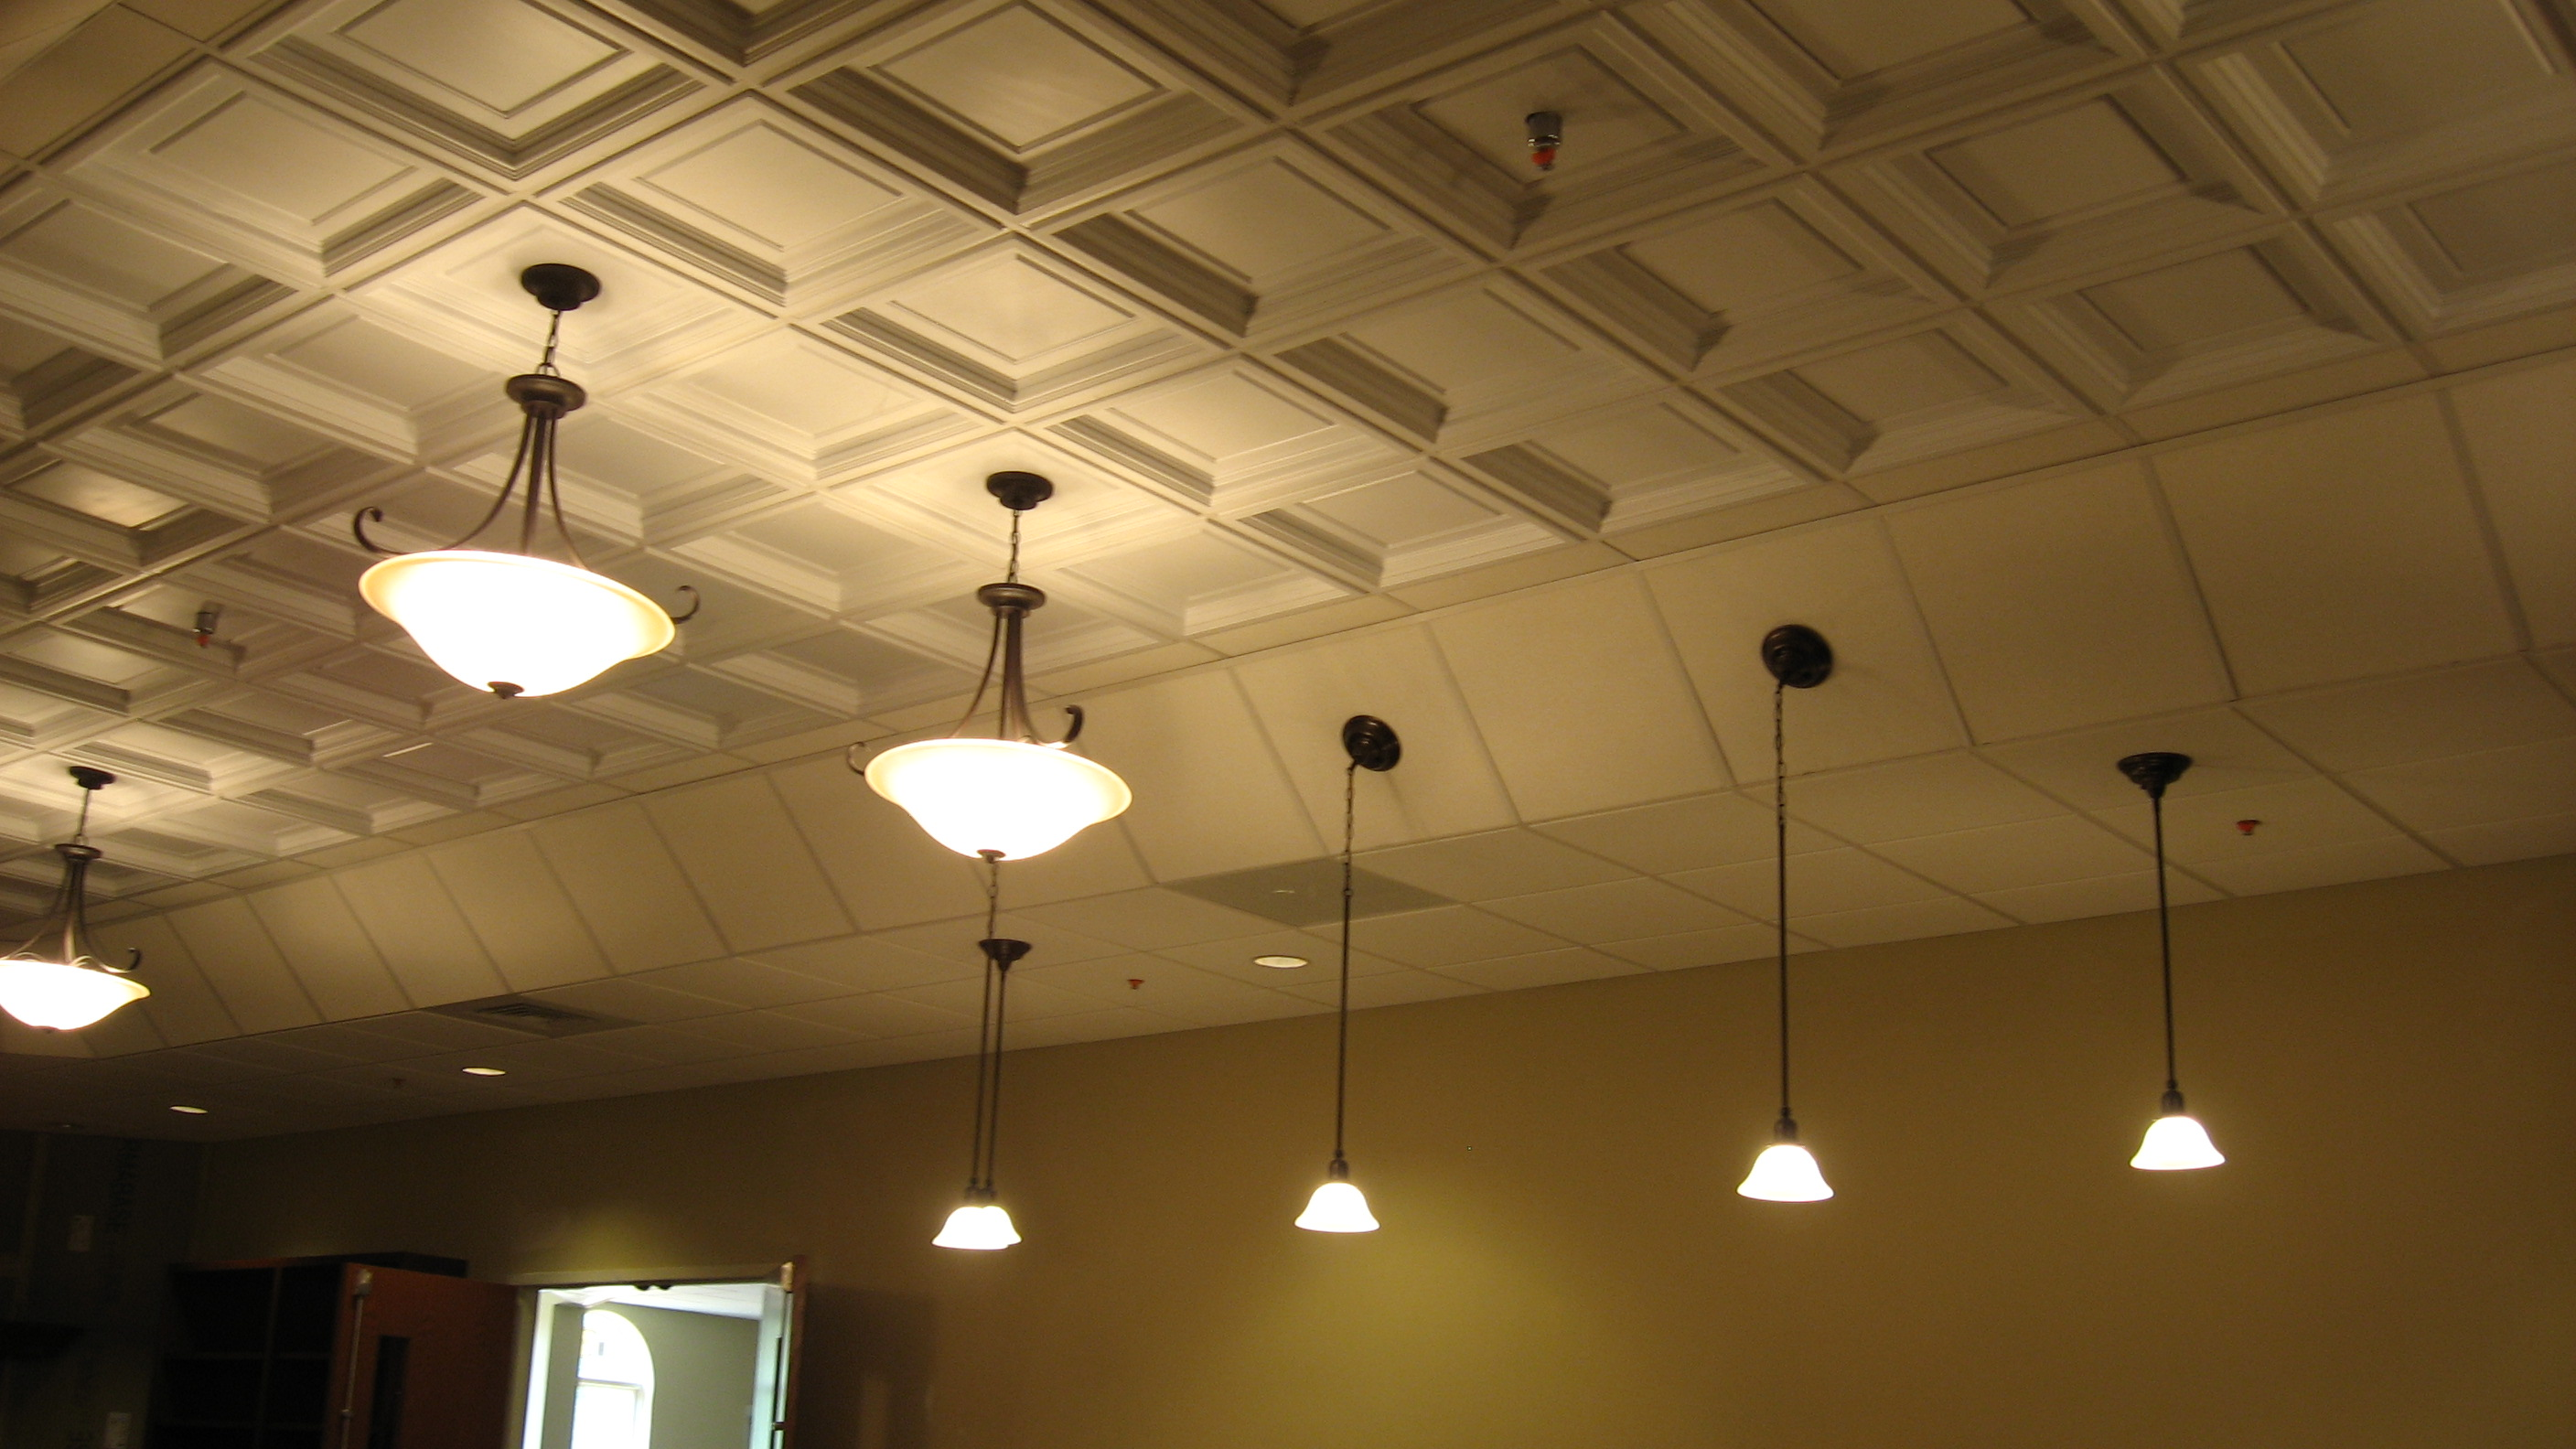 Decorative Ceiling Home Design Ideas, Pictures, Remodel and Decor